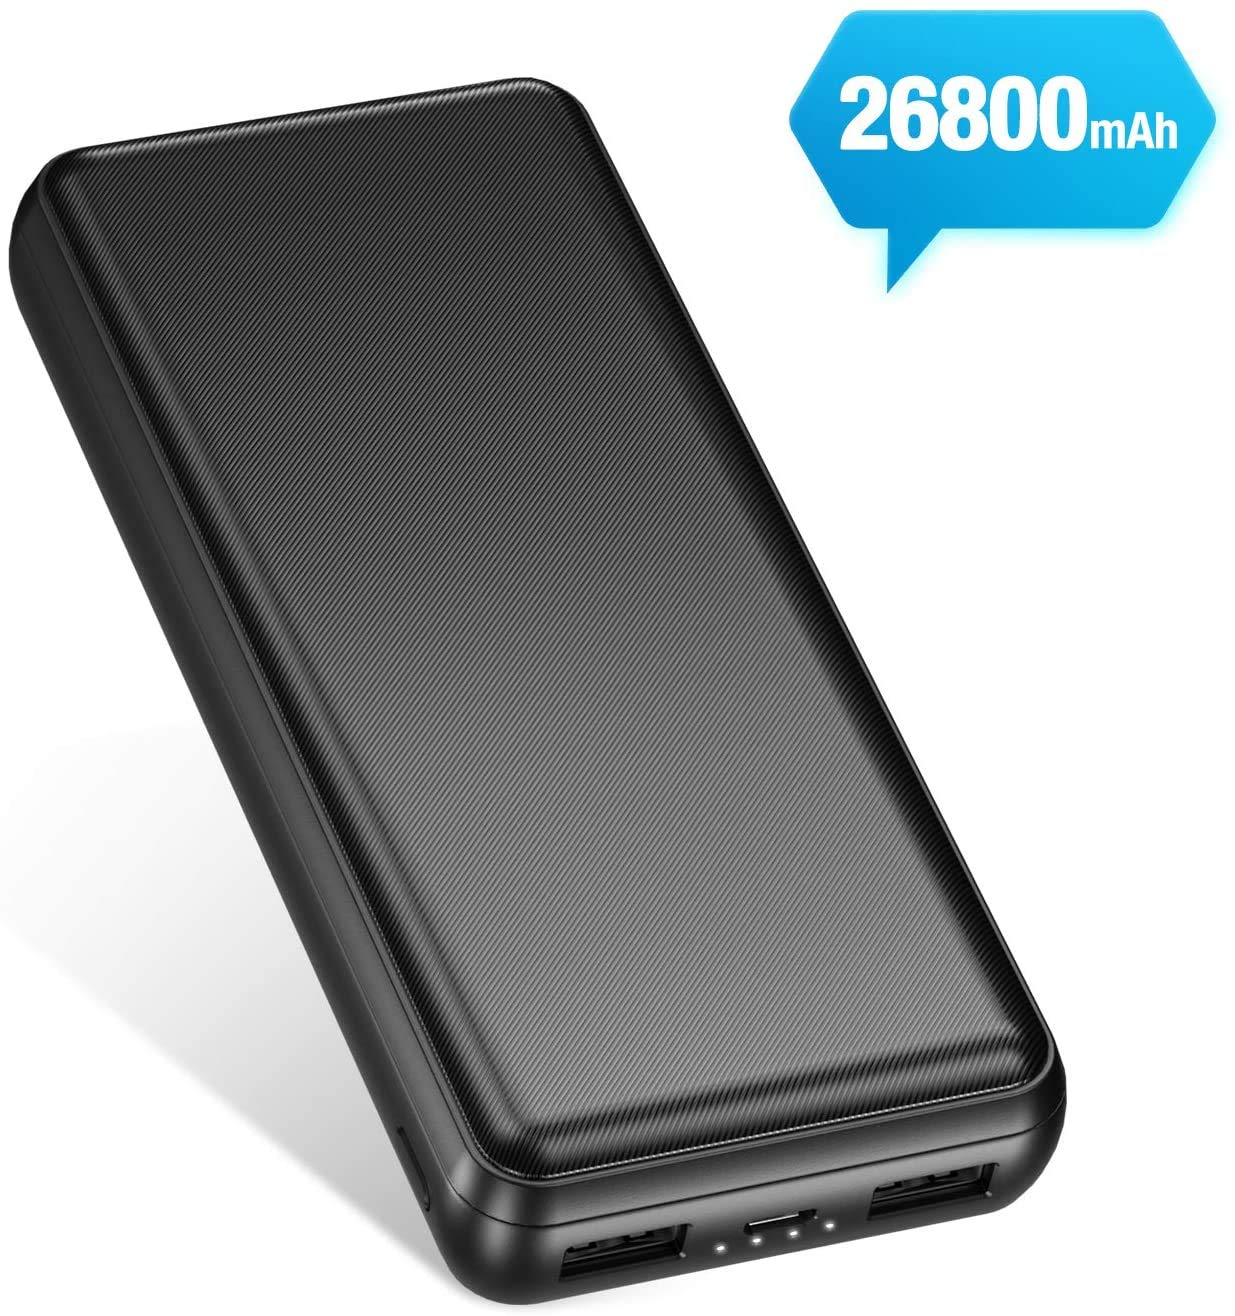 IEsafy 26800mAh Power Bank High Capacity Portable Charger with 2 Ports Ultra High Speed Battery Pack Phone Charger Backup Battery Compact for Smart Phone, Tablet and More